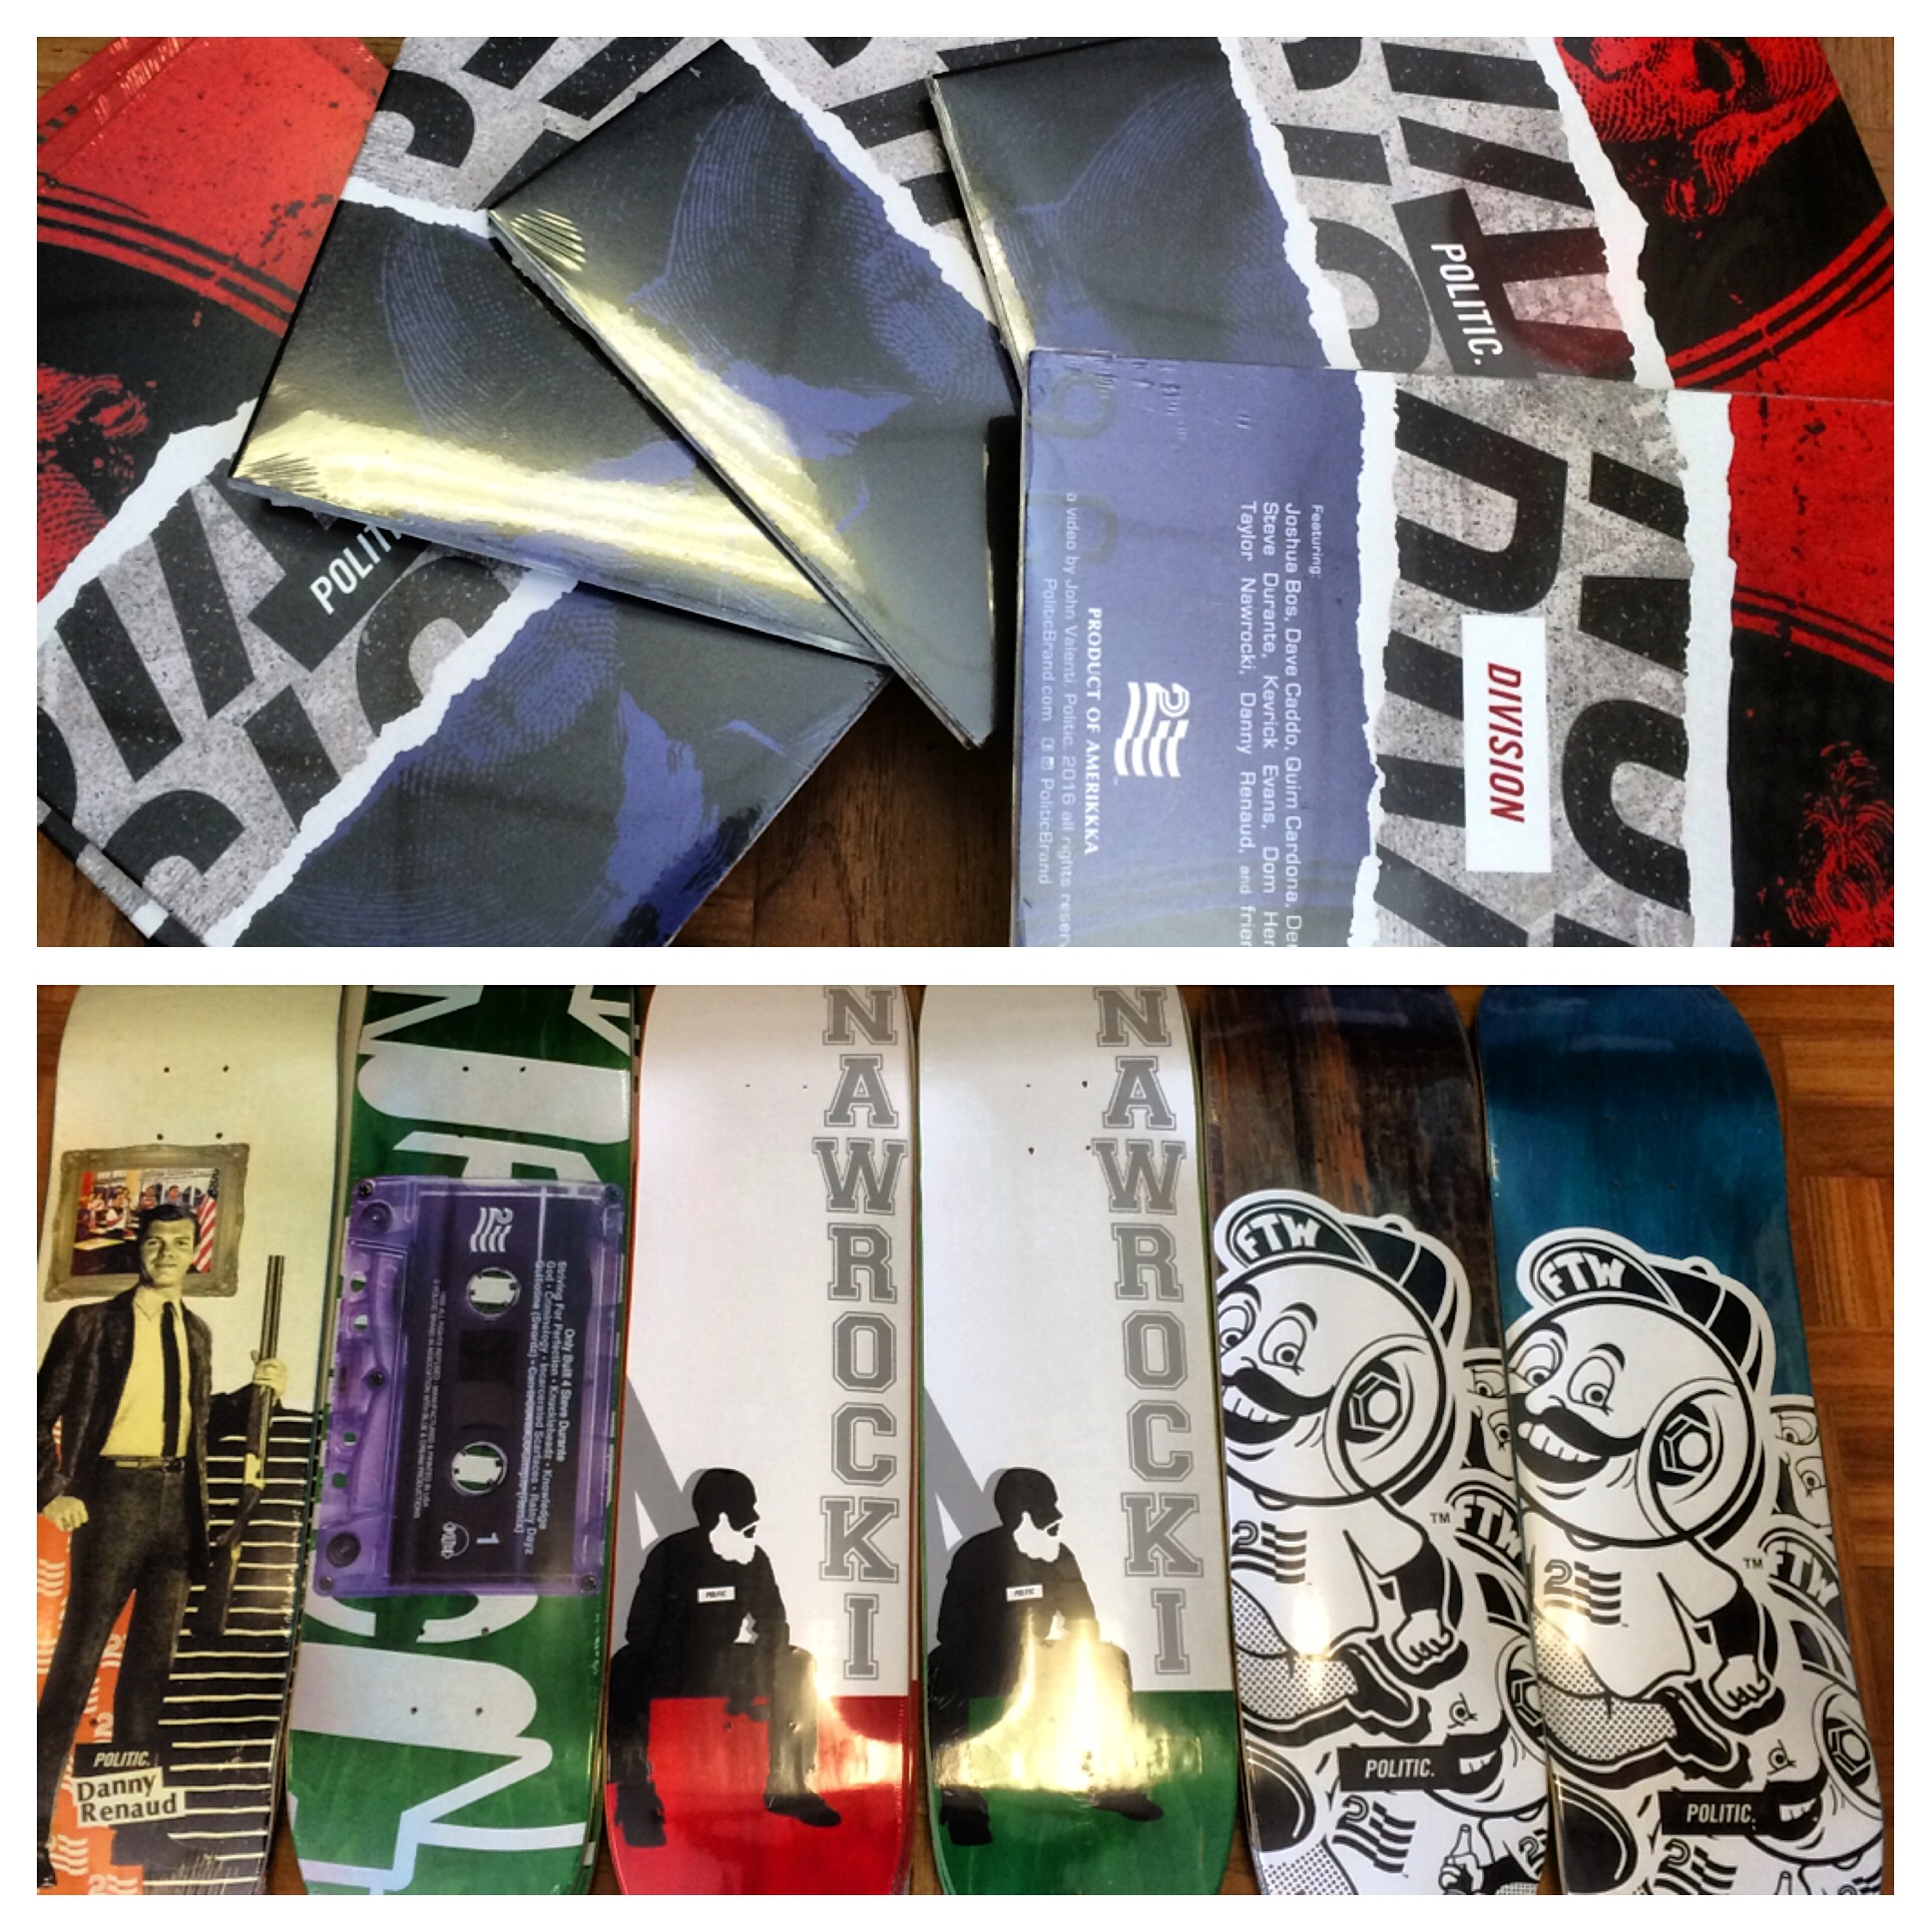 """New Politic Decks   Their New Video """"Division"""" Just Came In At Both Store  Locations 5a26dfeb828"""